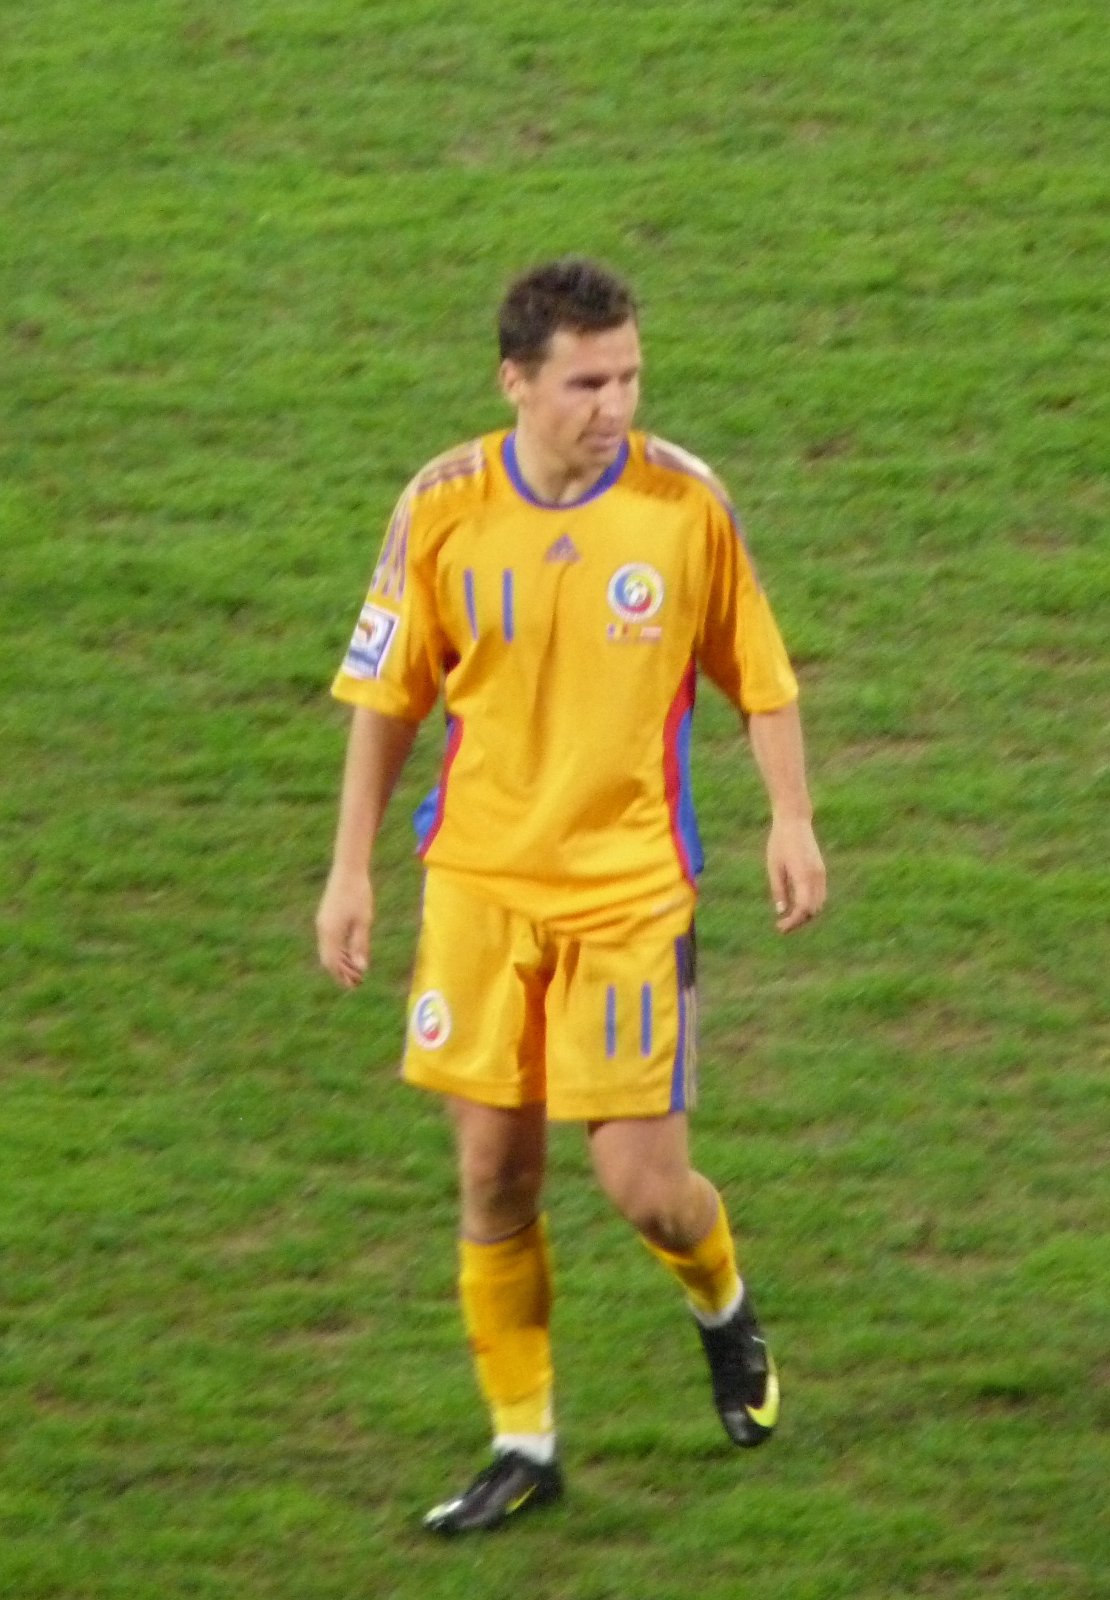 Bucur playing for [[Romania national football team|Romania]] in September 2009